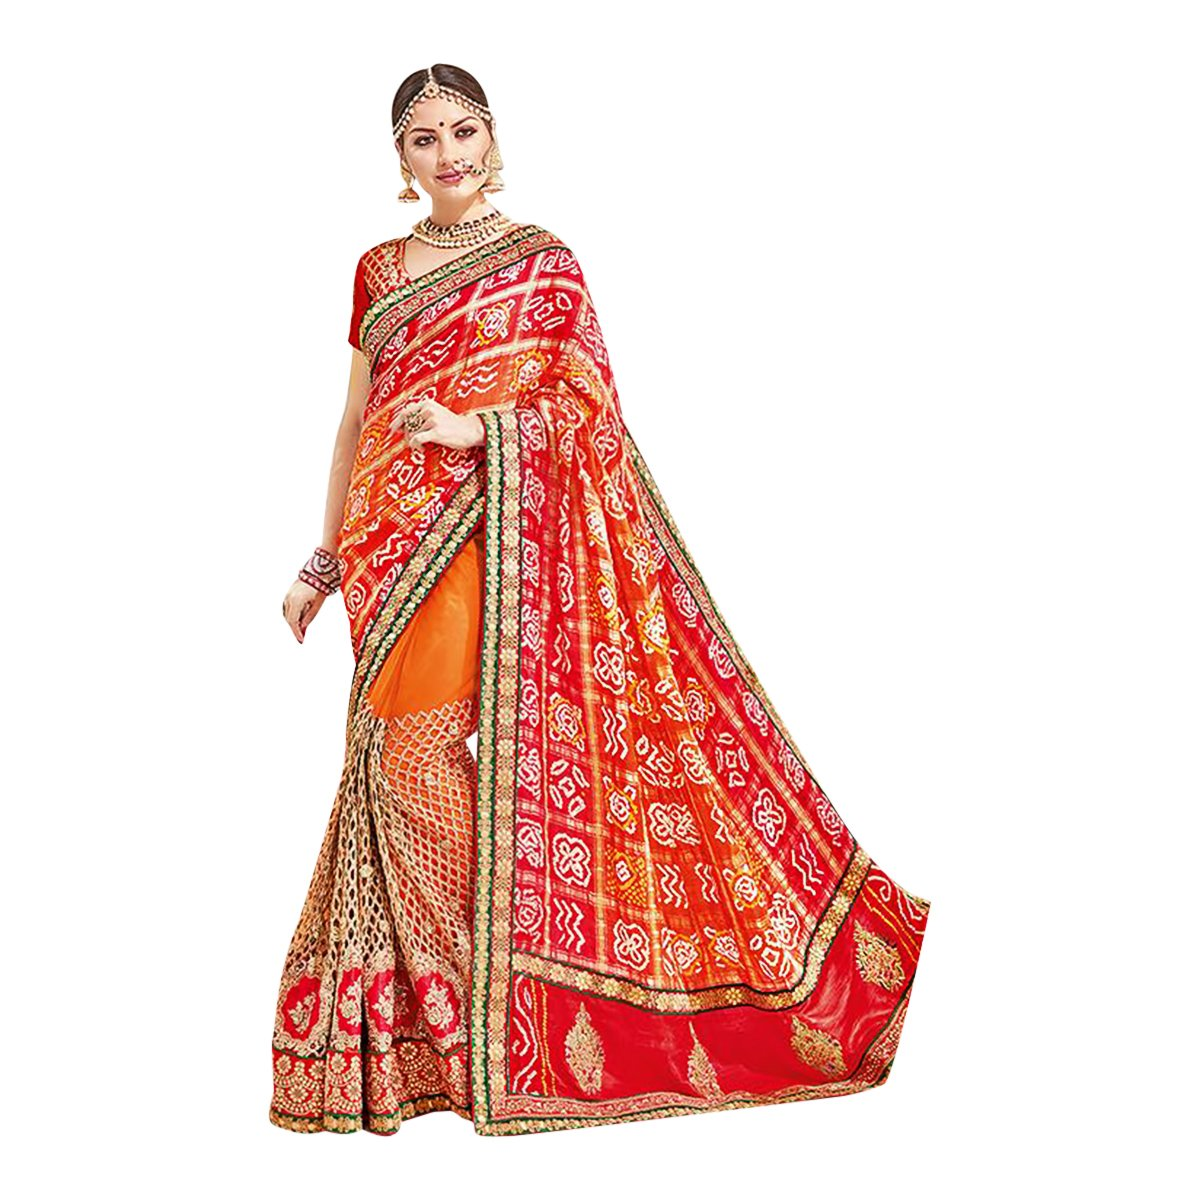 Red Orange Bollywood Bridal Designer Saree Sari For Women Party Wear Black Friday Special Wedding Blouse Ceremony 615 2H by ETHNIC EMPORIUM